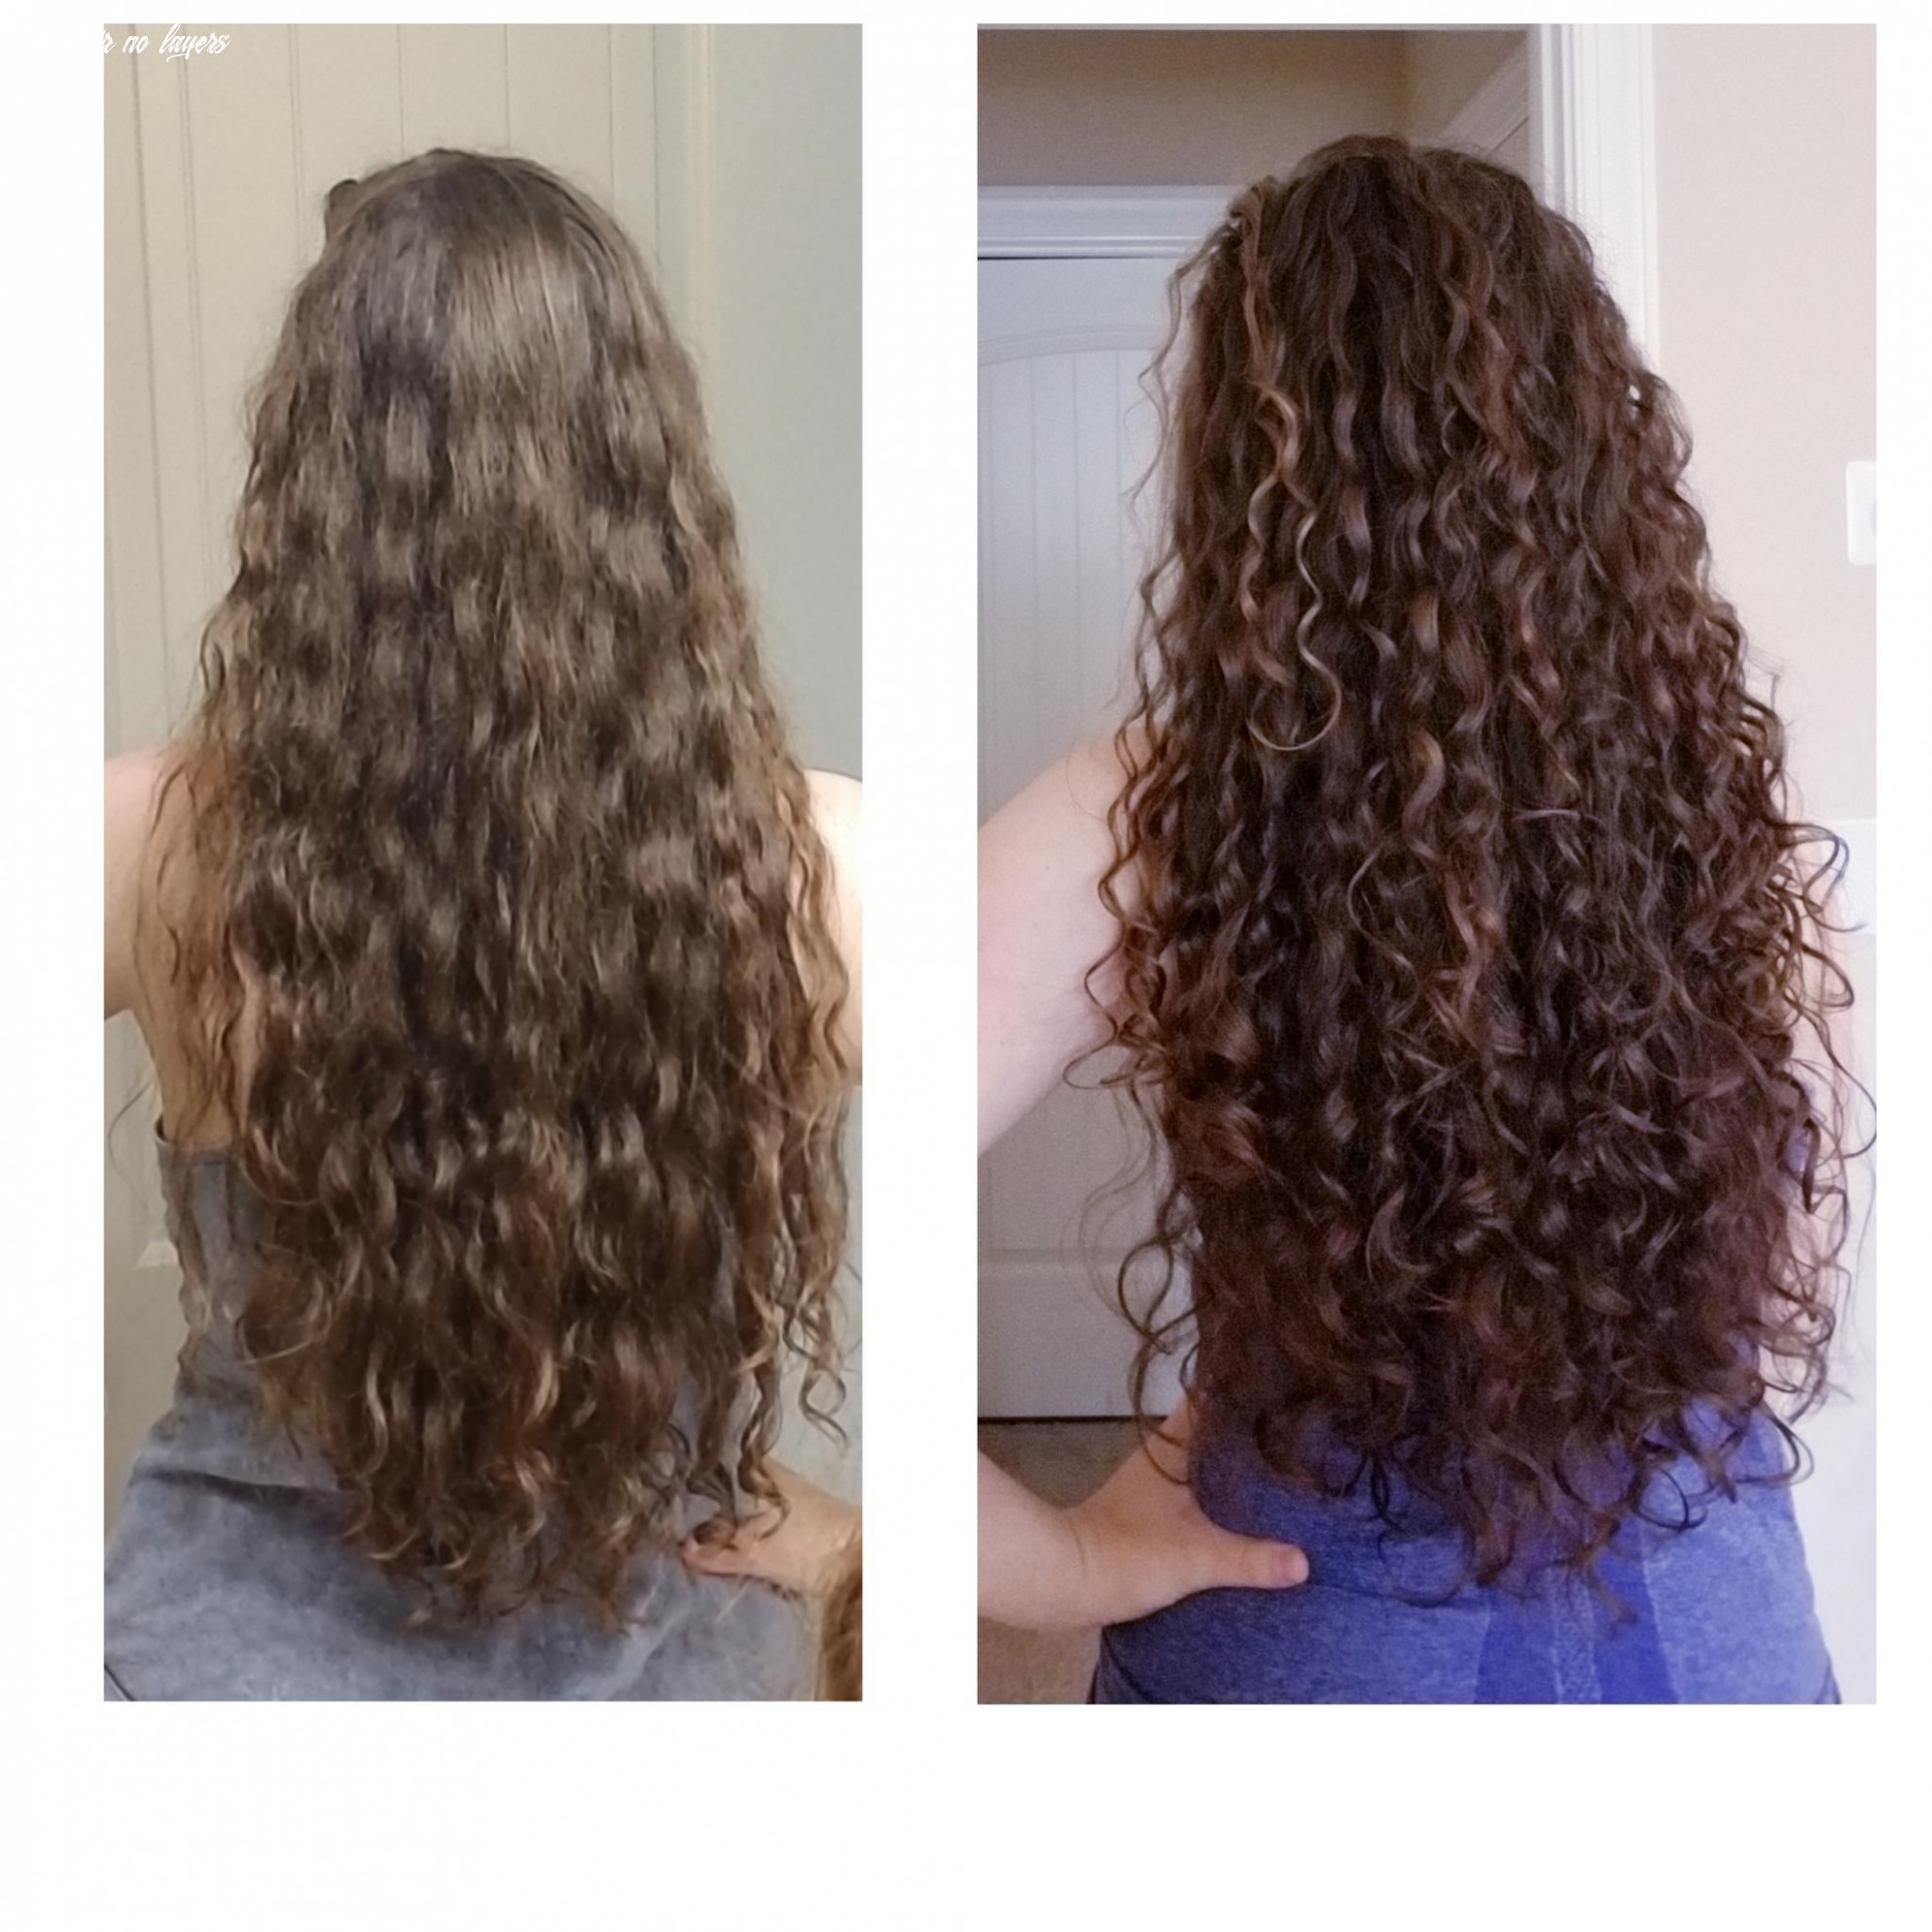 The difference layers make (no routine or color change, just